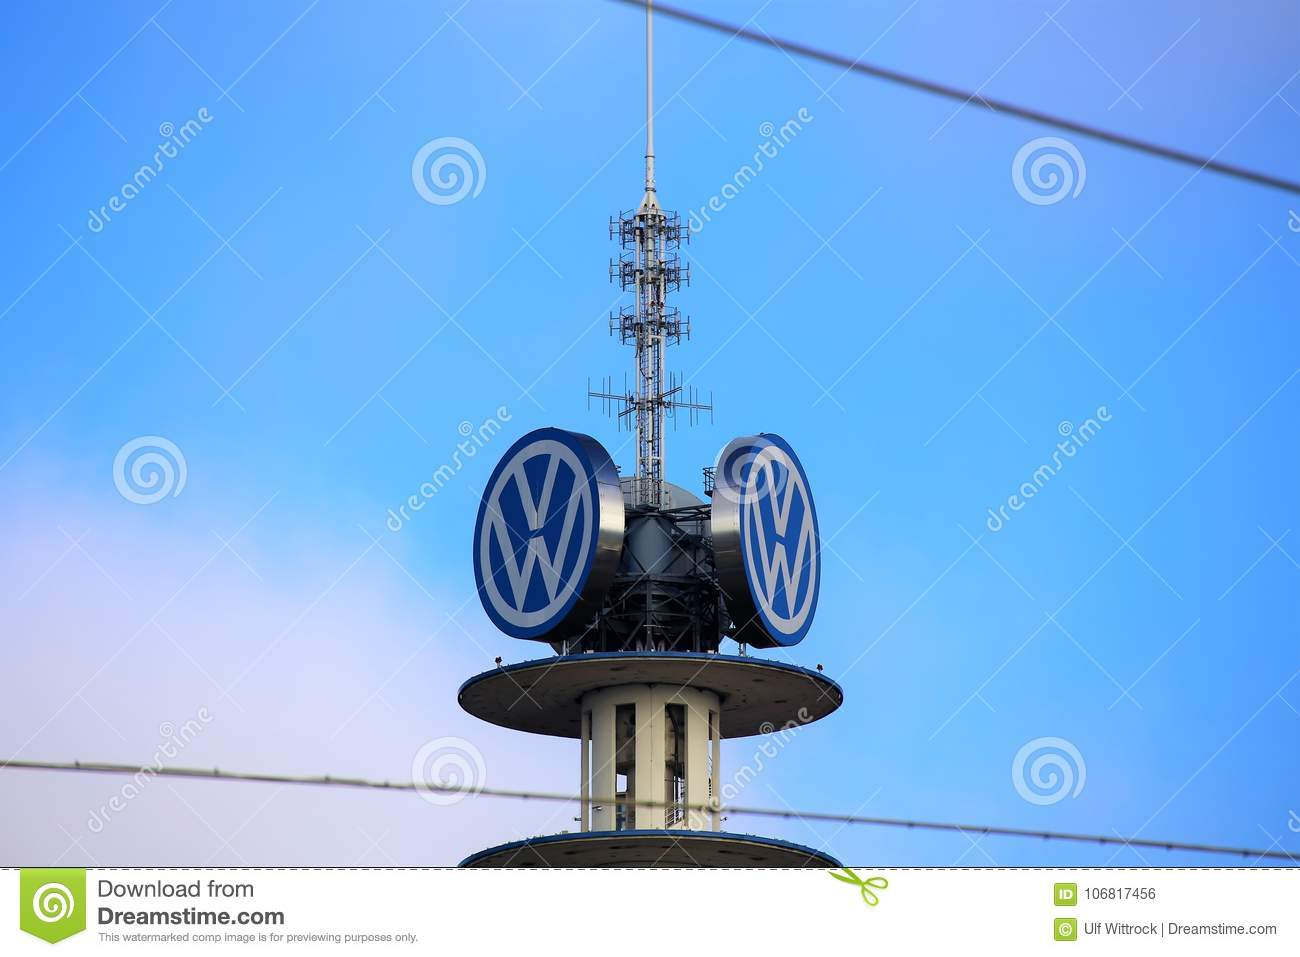 Hannover/Germany - 11/13/2017 - An Image Of A VW Tower - VW